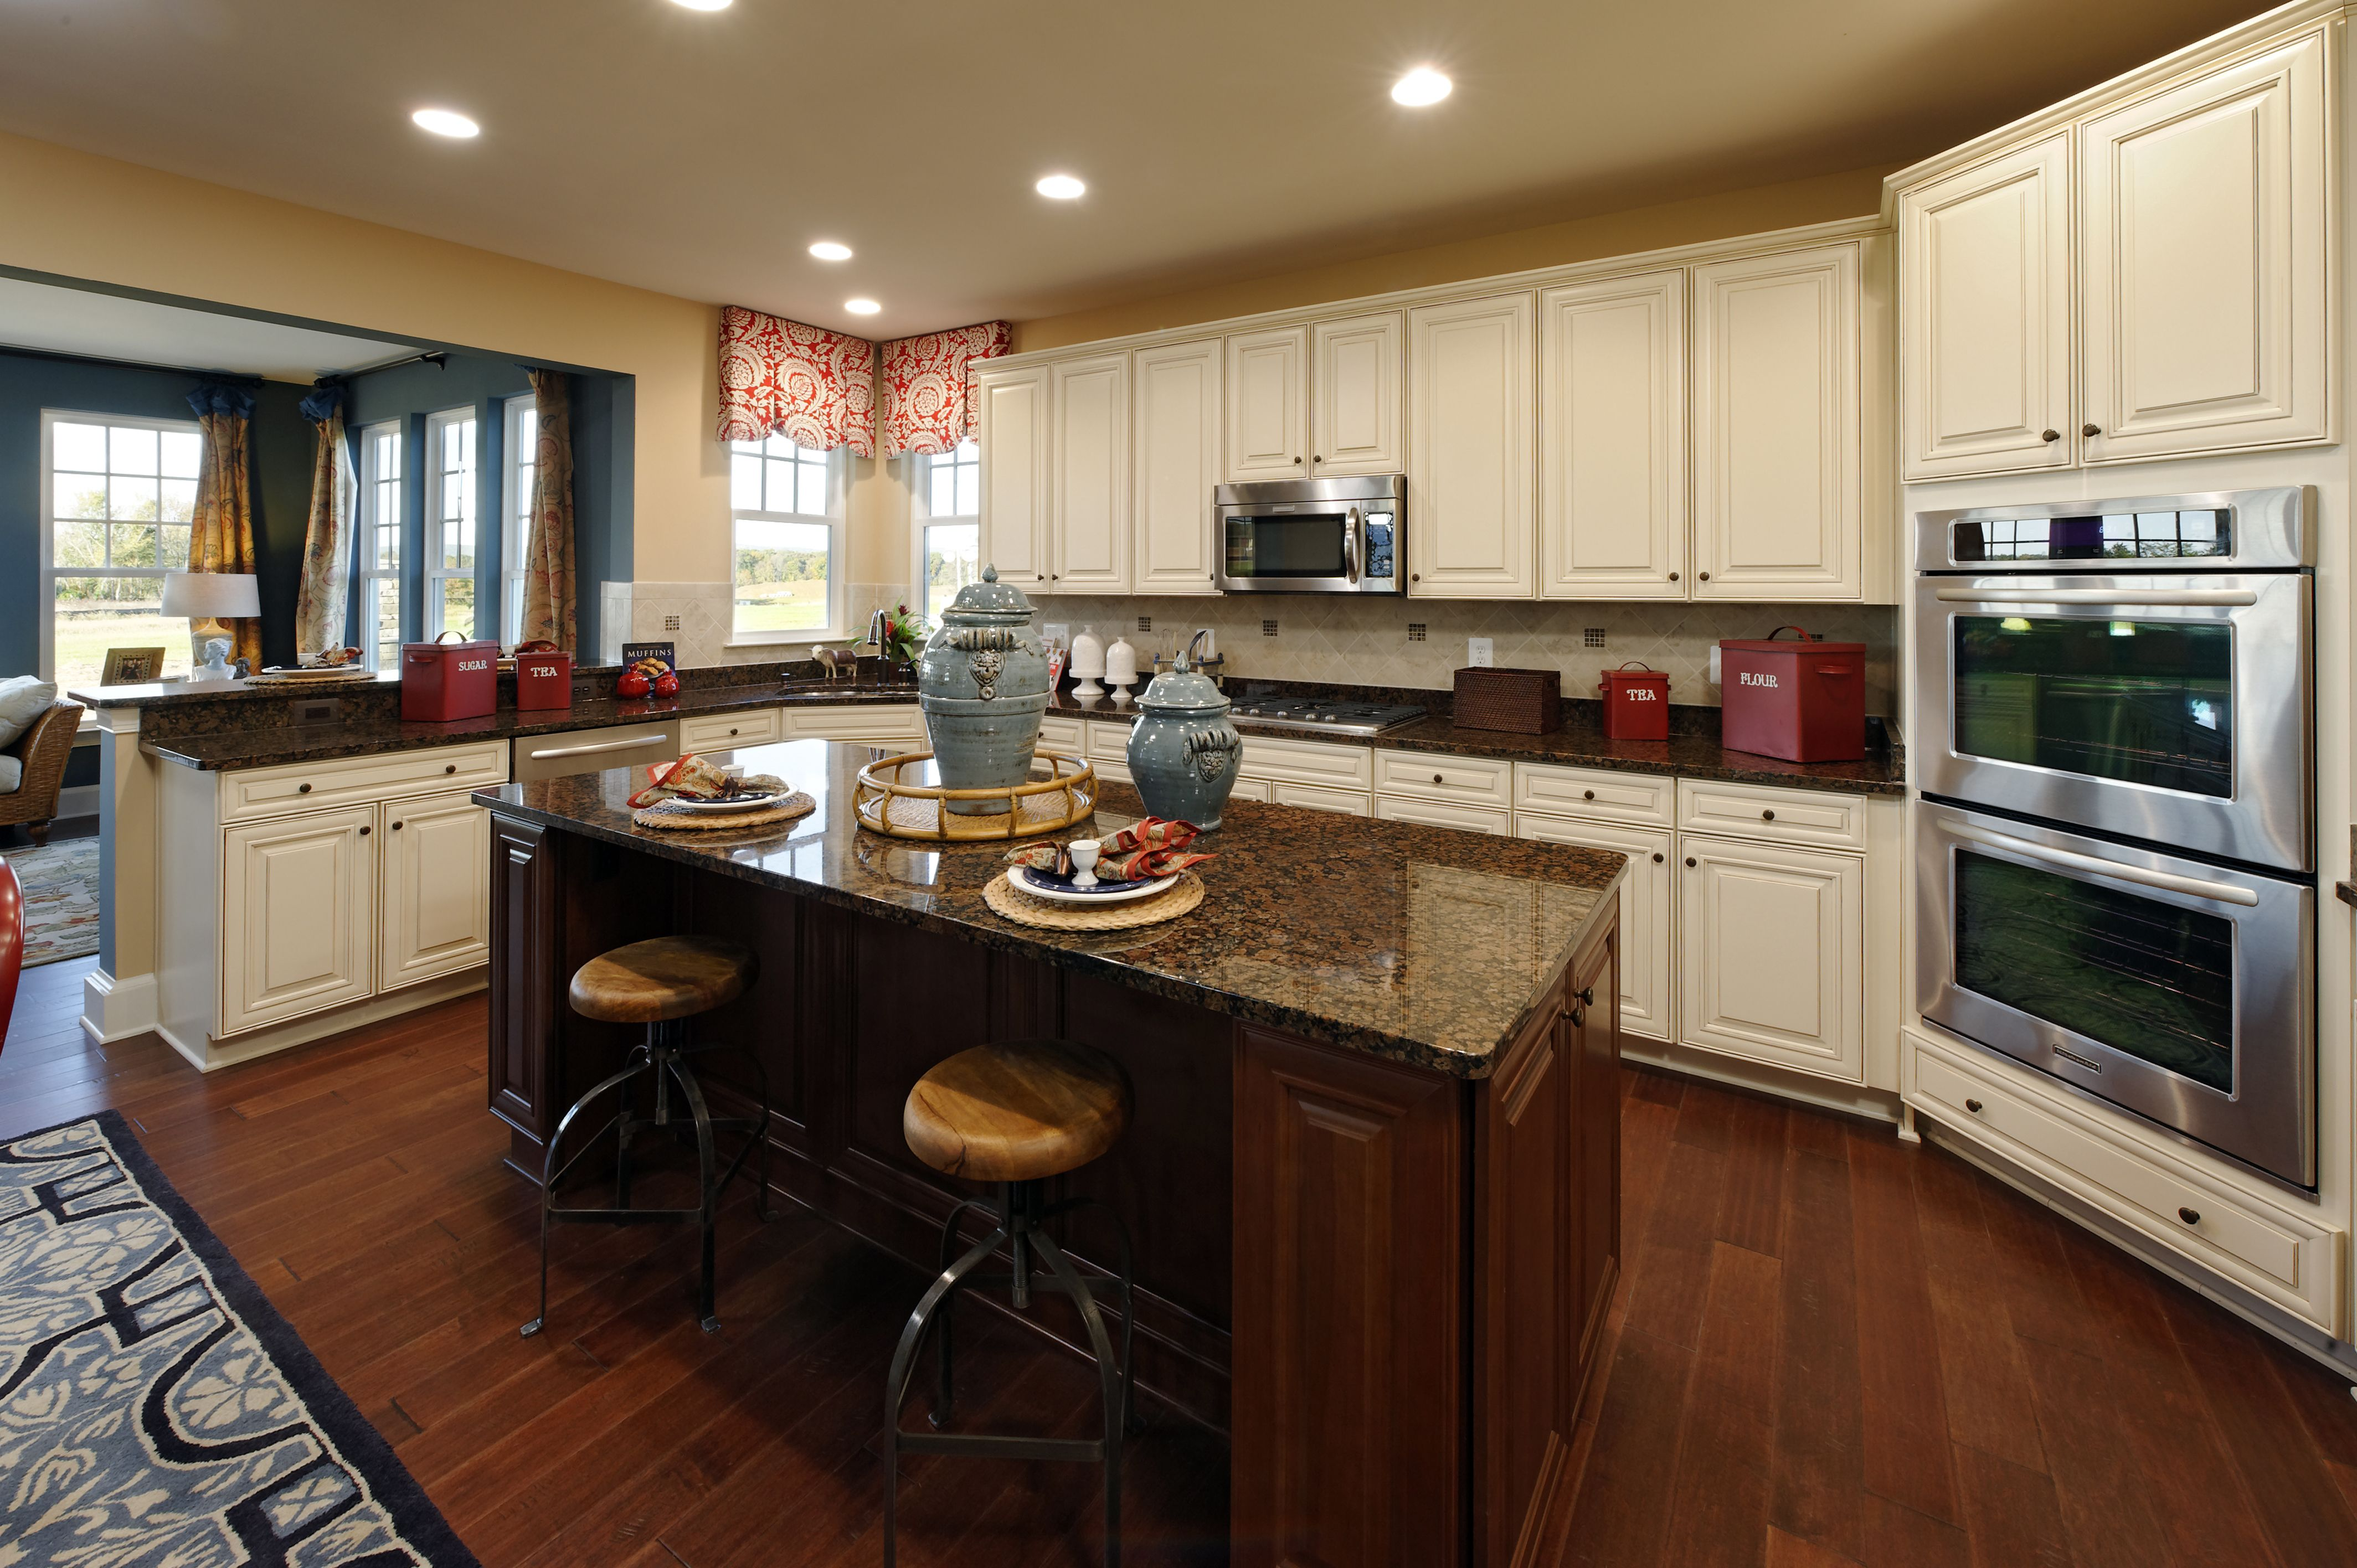 Willowsford Virginia Beazer Homes Home Kitchens Spacious Kitchens Home